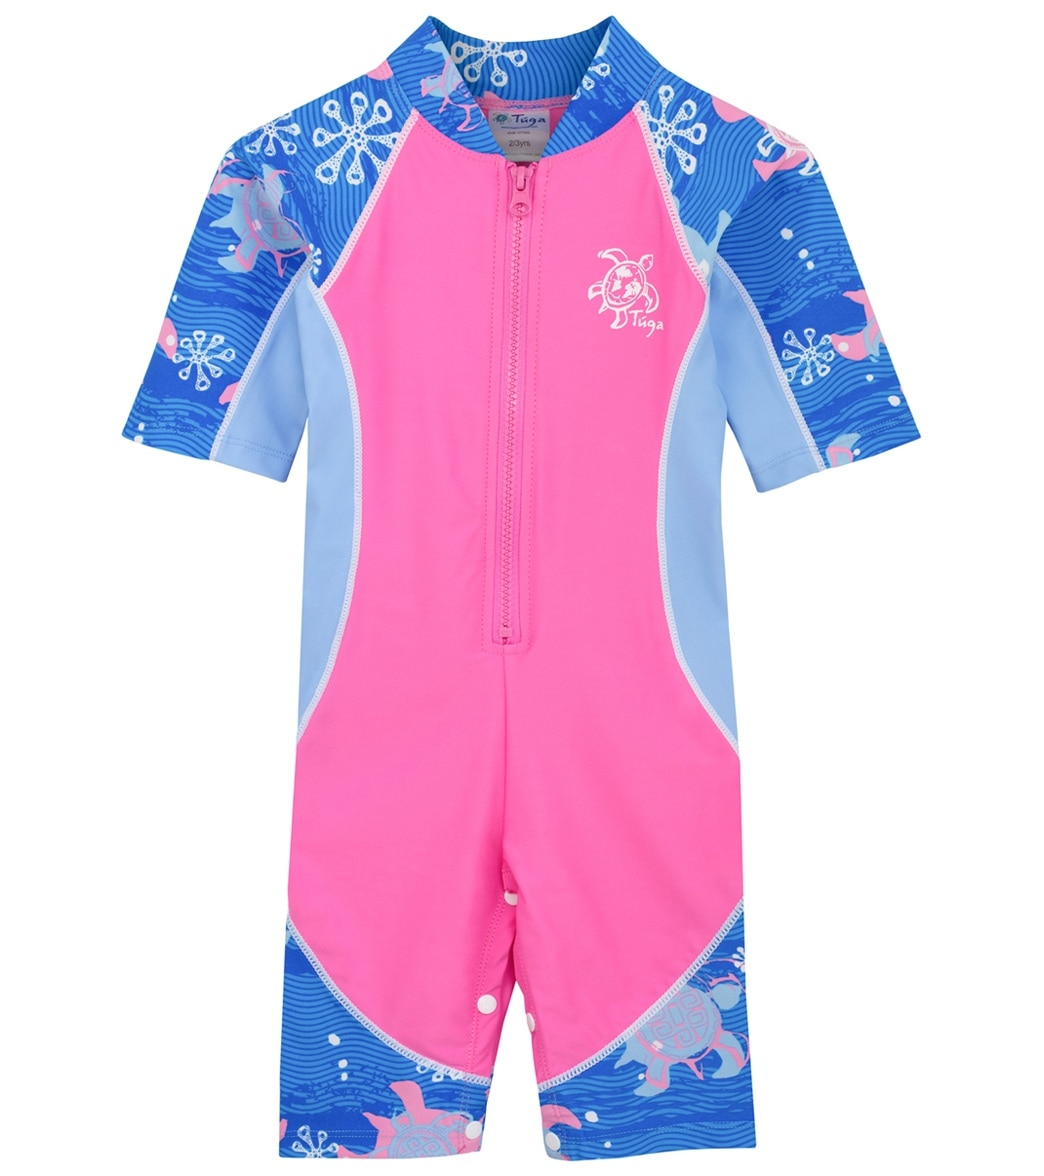 3f0cdca662 Tuga Girls' Low Tide Short Sleeve Sunsuit (Baby, Toddler, Little Kid) at  SwimOutlet.com